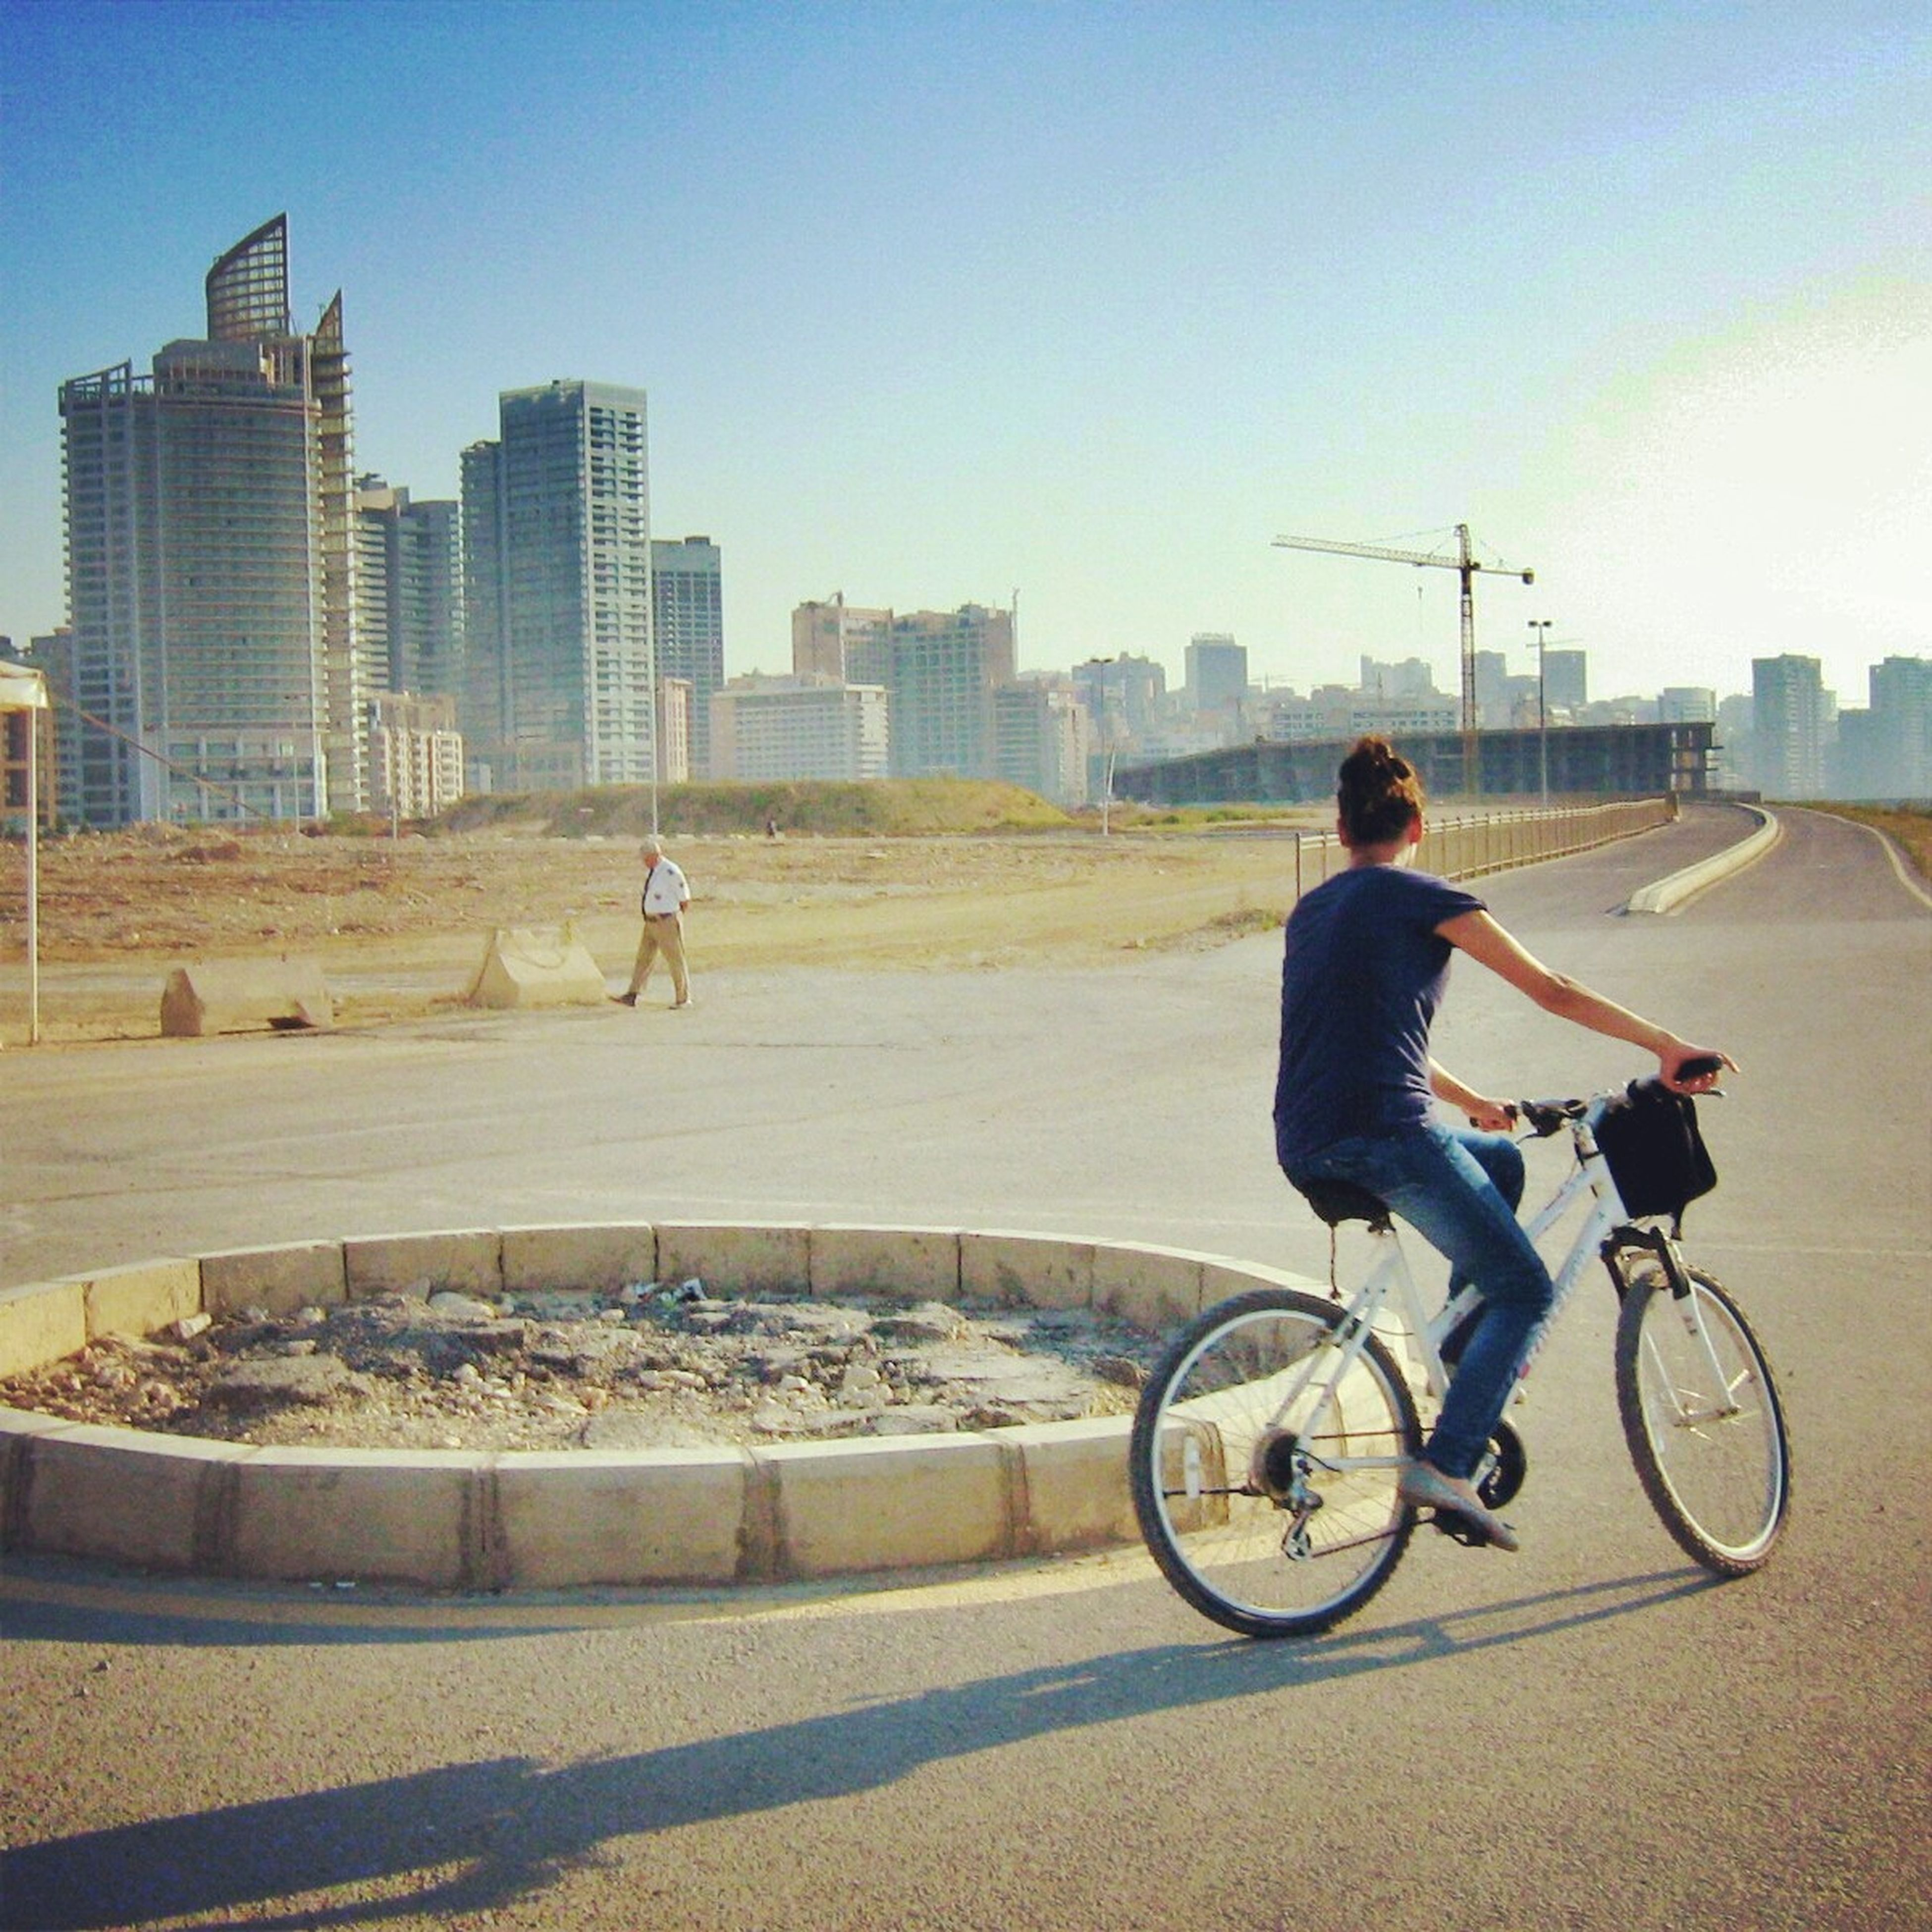 bicycle, building exterior, architecture, built structure, full length, transportation, lifestyles, city, land vehicle, mode of transport, riding, leisure activity, clear sky, casual clothing, side view, men, young adult, street